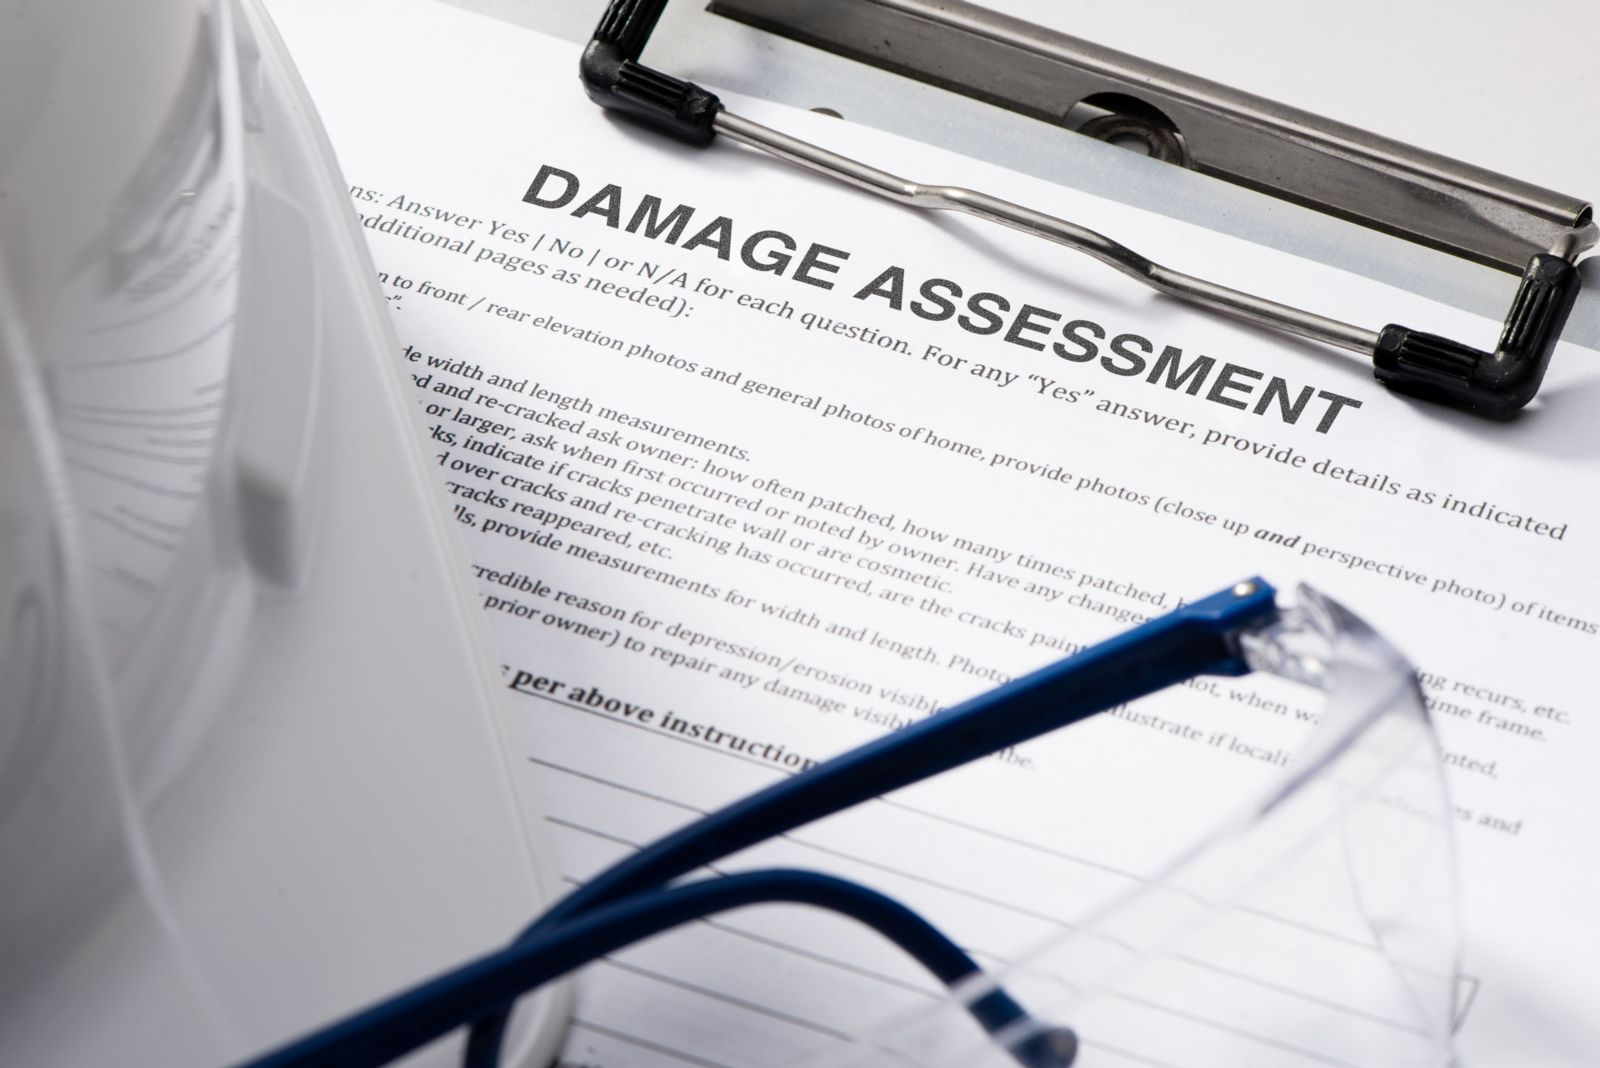 Hurricane damage assessment for fort lauderdale home insurance attorney